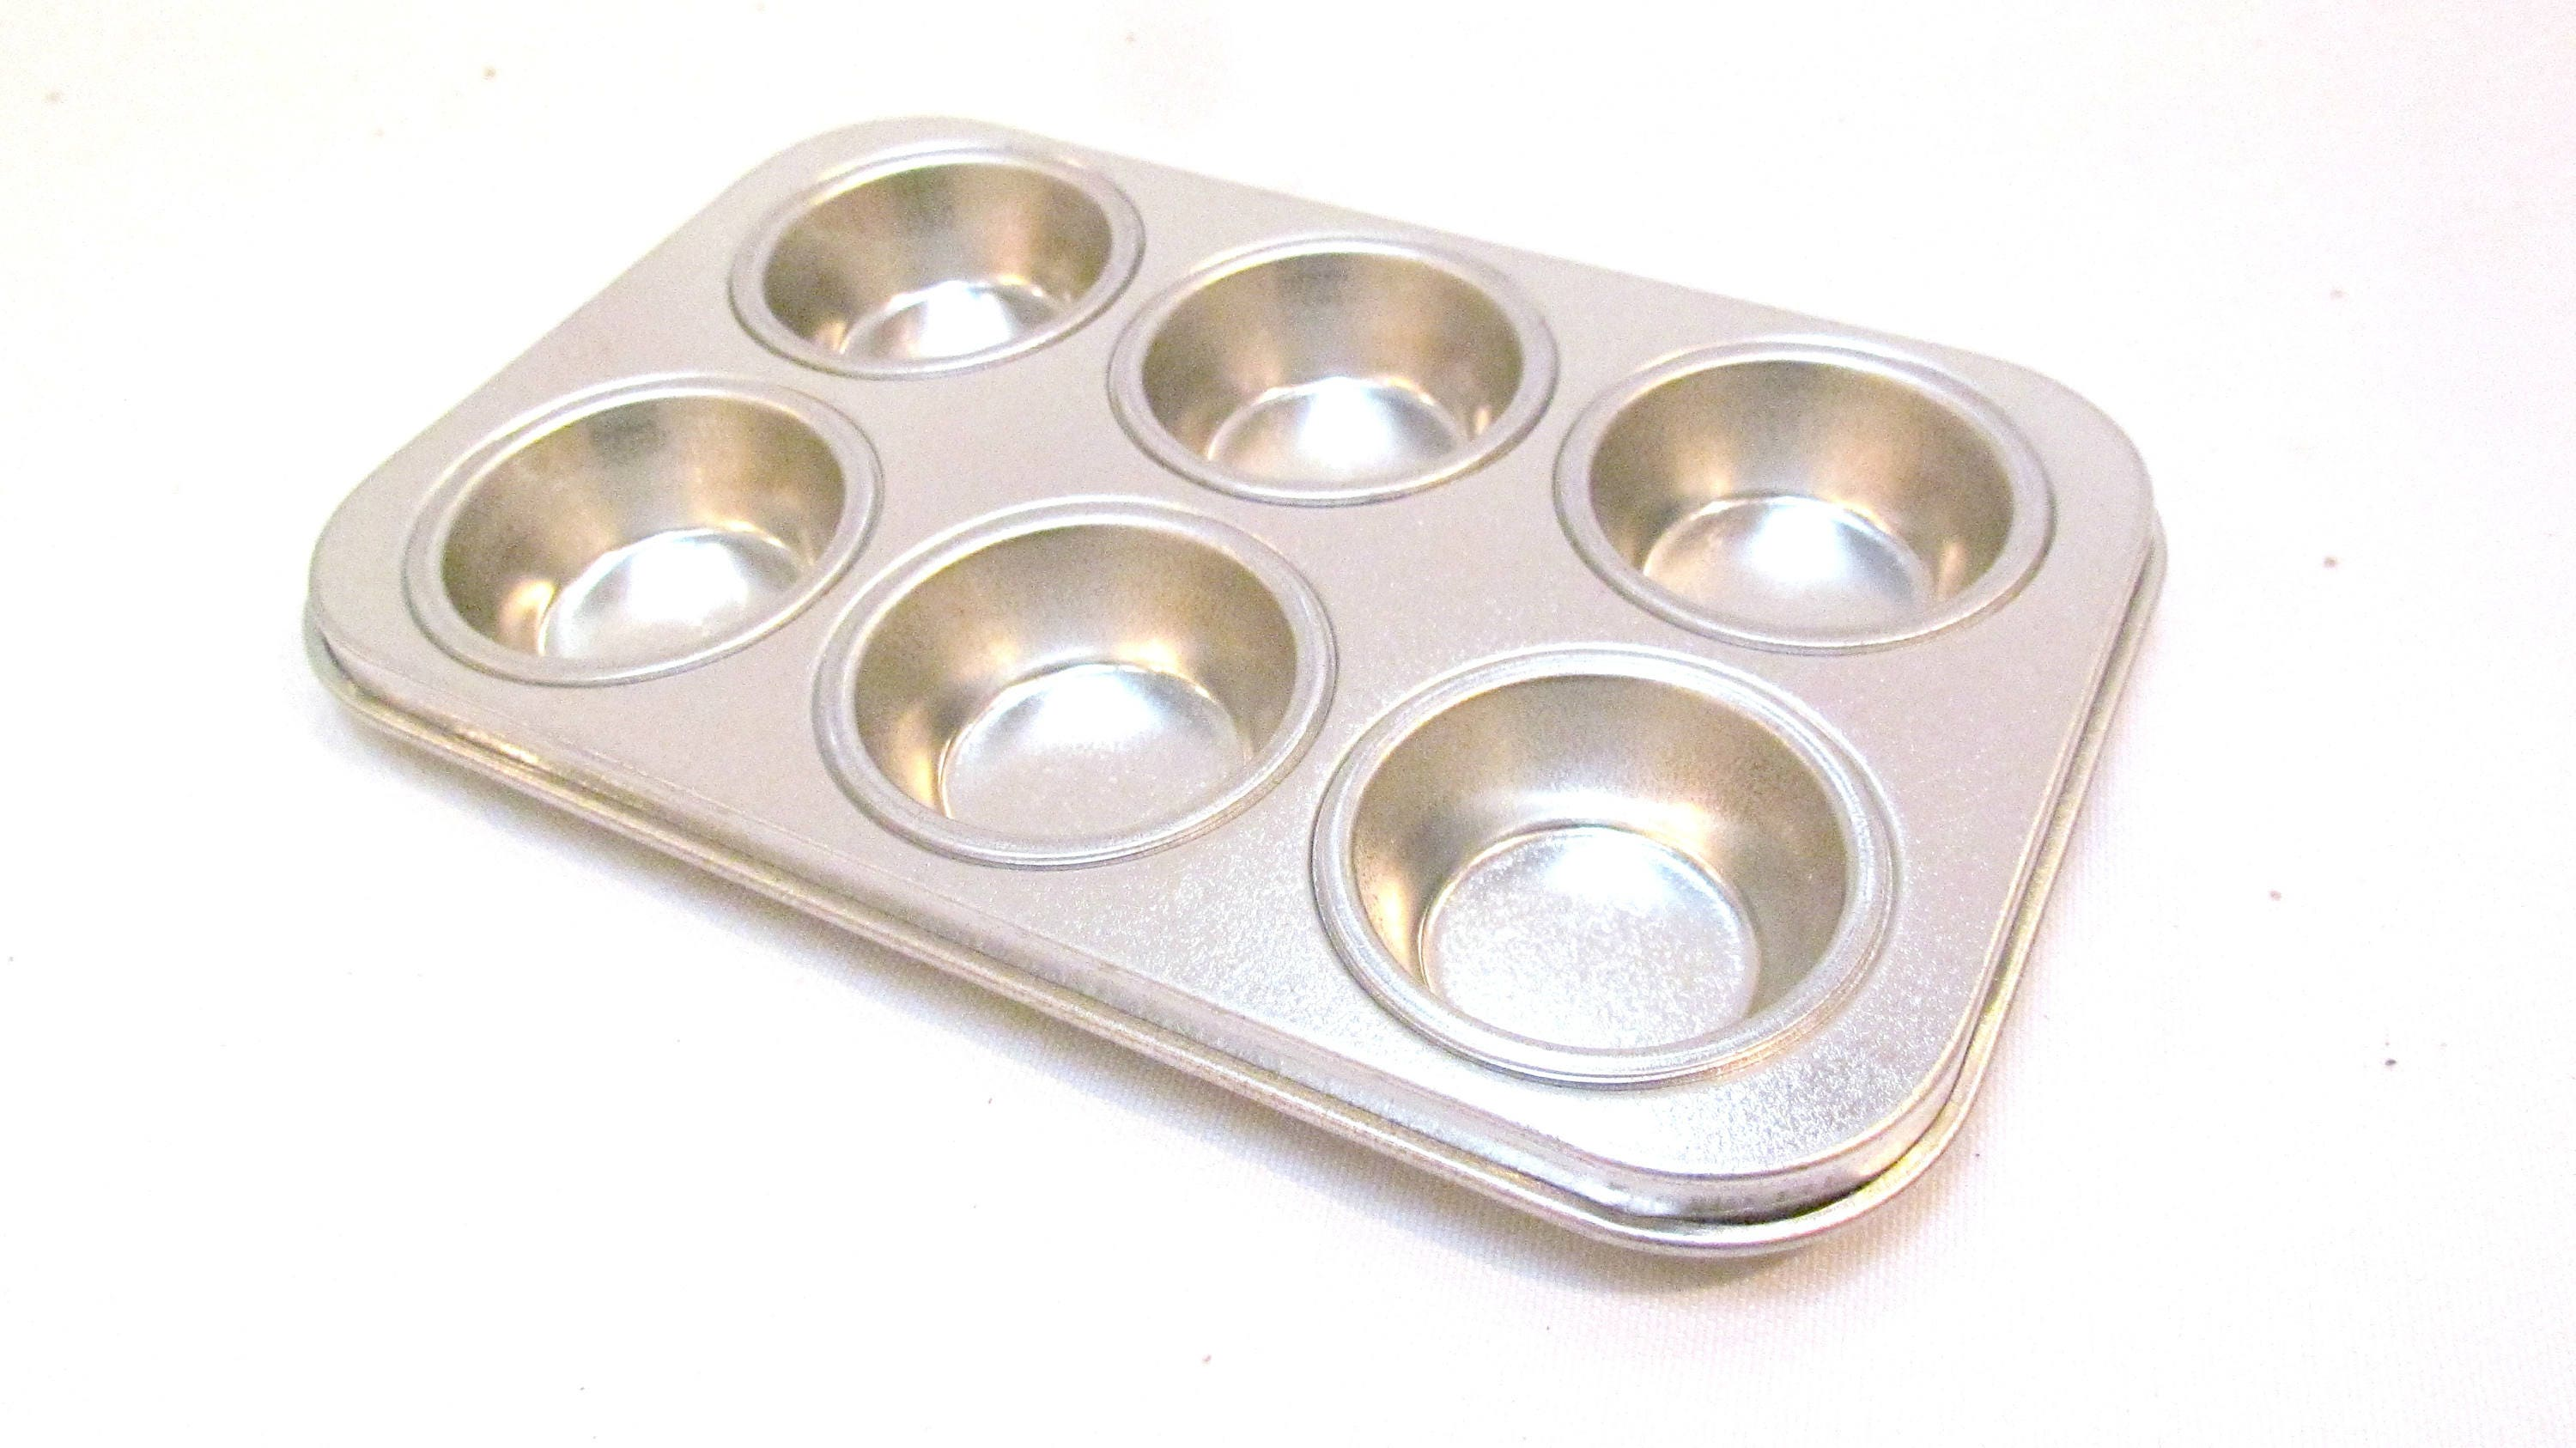 Easy Bake Oven Cupcake Baking Pan Replacement Part For